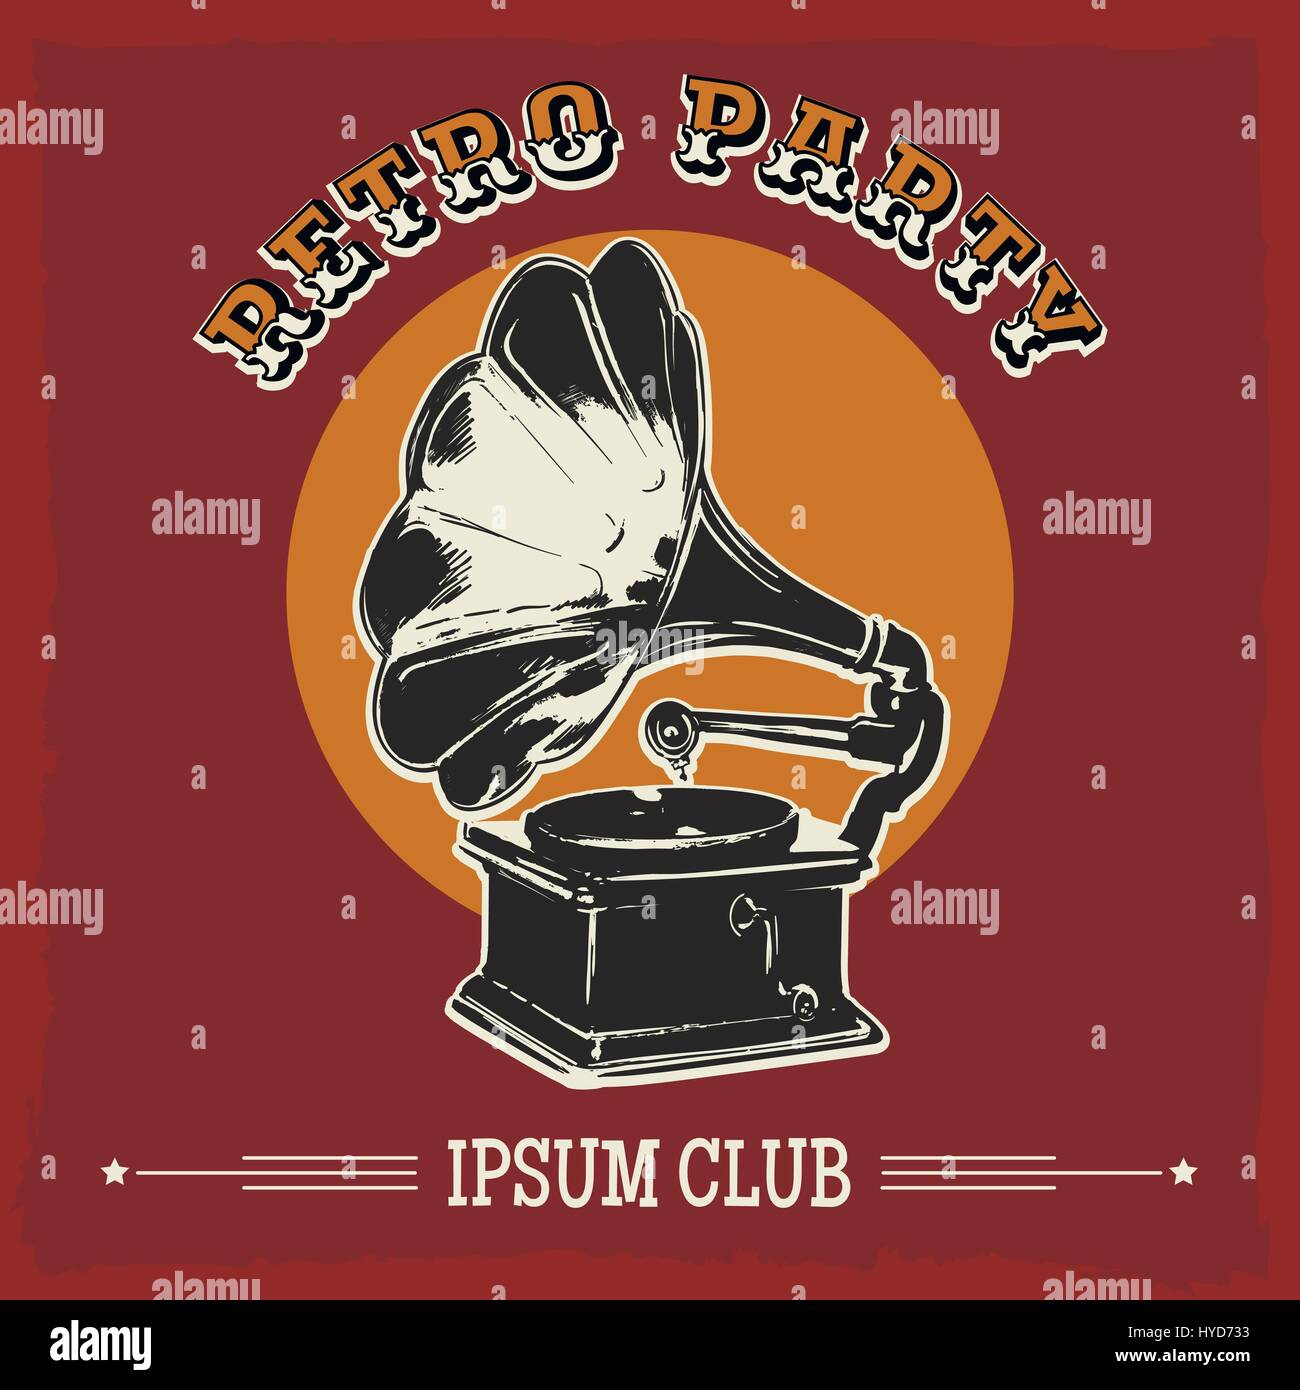 vintage party poster with old gramophone vector illustration in stock vector image art alamy https www alamy com stock photo vintage party poster with old gramophone vector illustration in retro 137359239 html